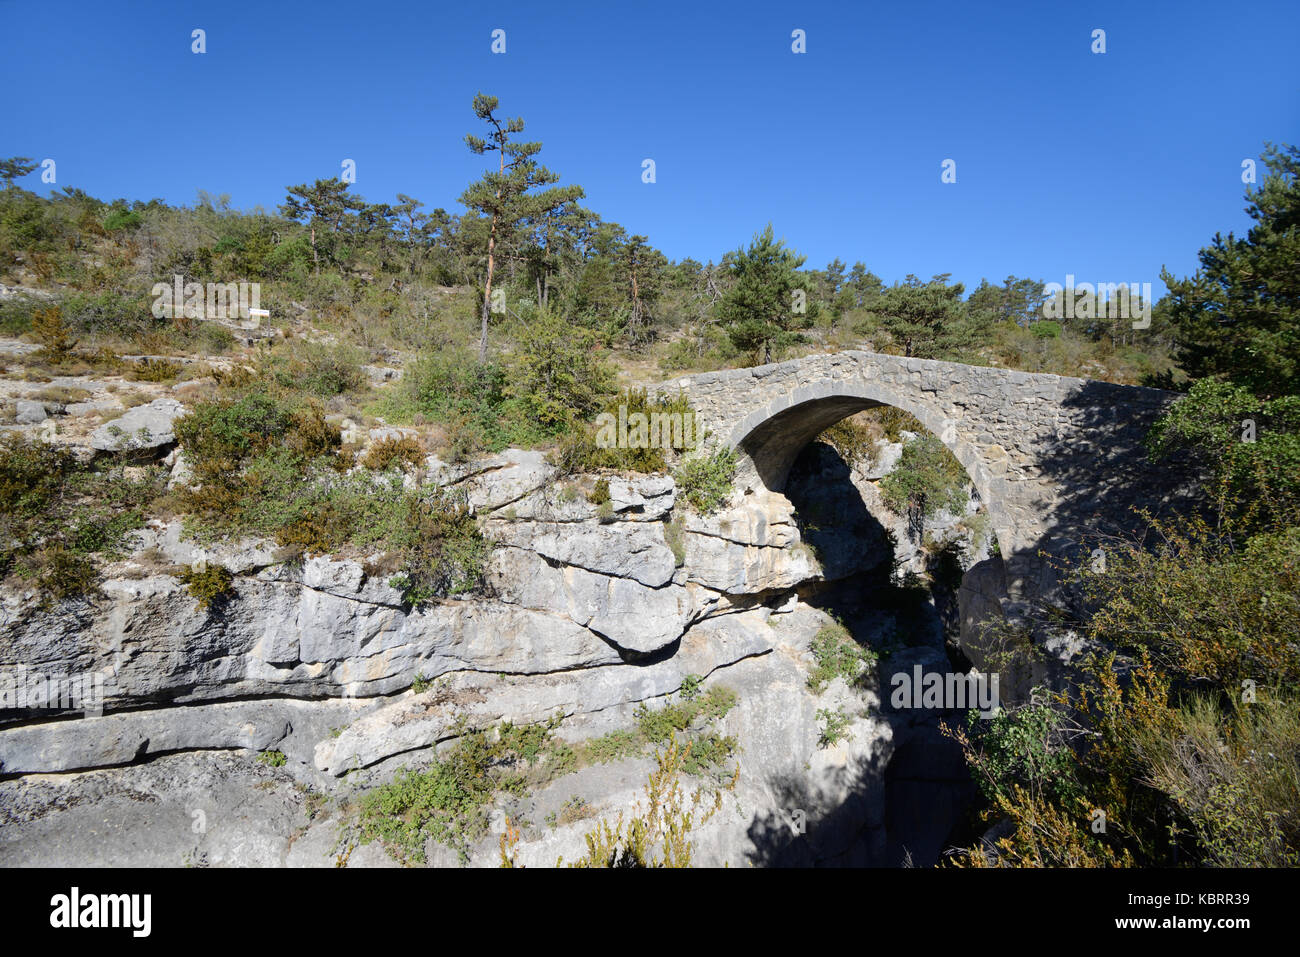 Favori Verdon Bridge Stock Photos & Verdon Bridge Stock Images - Alamy RI18